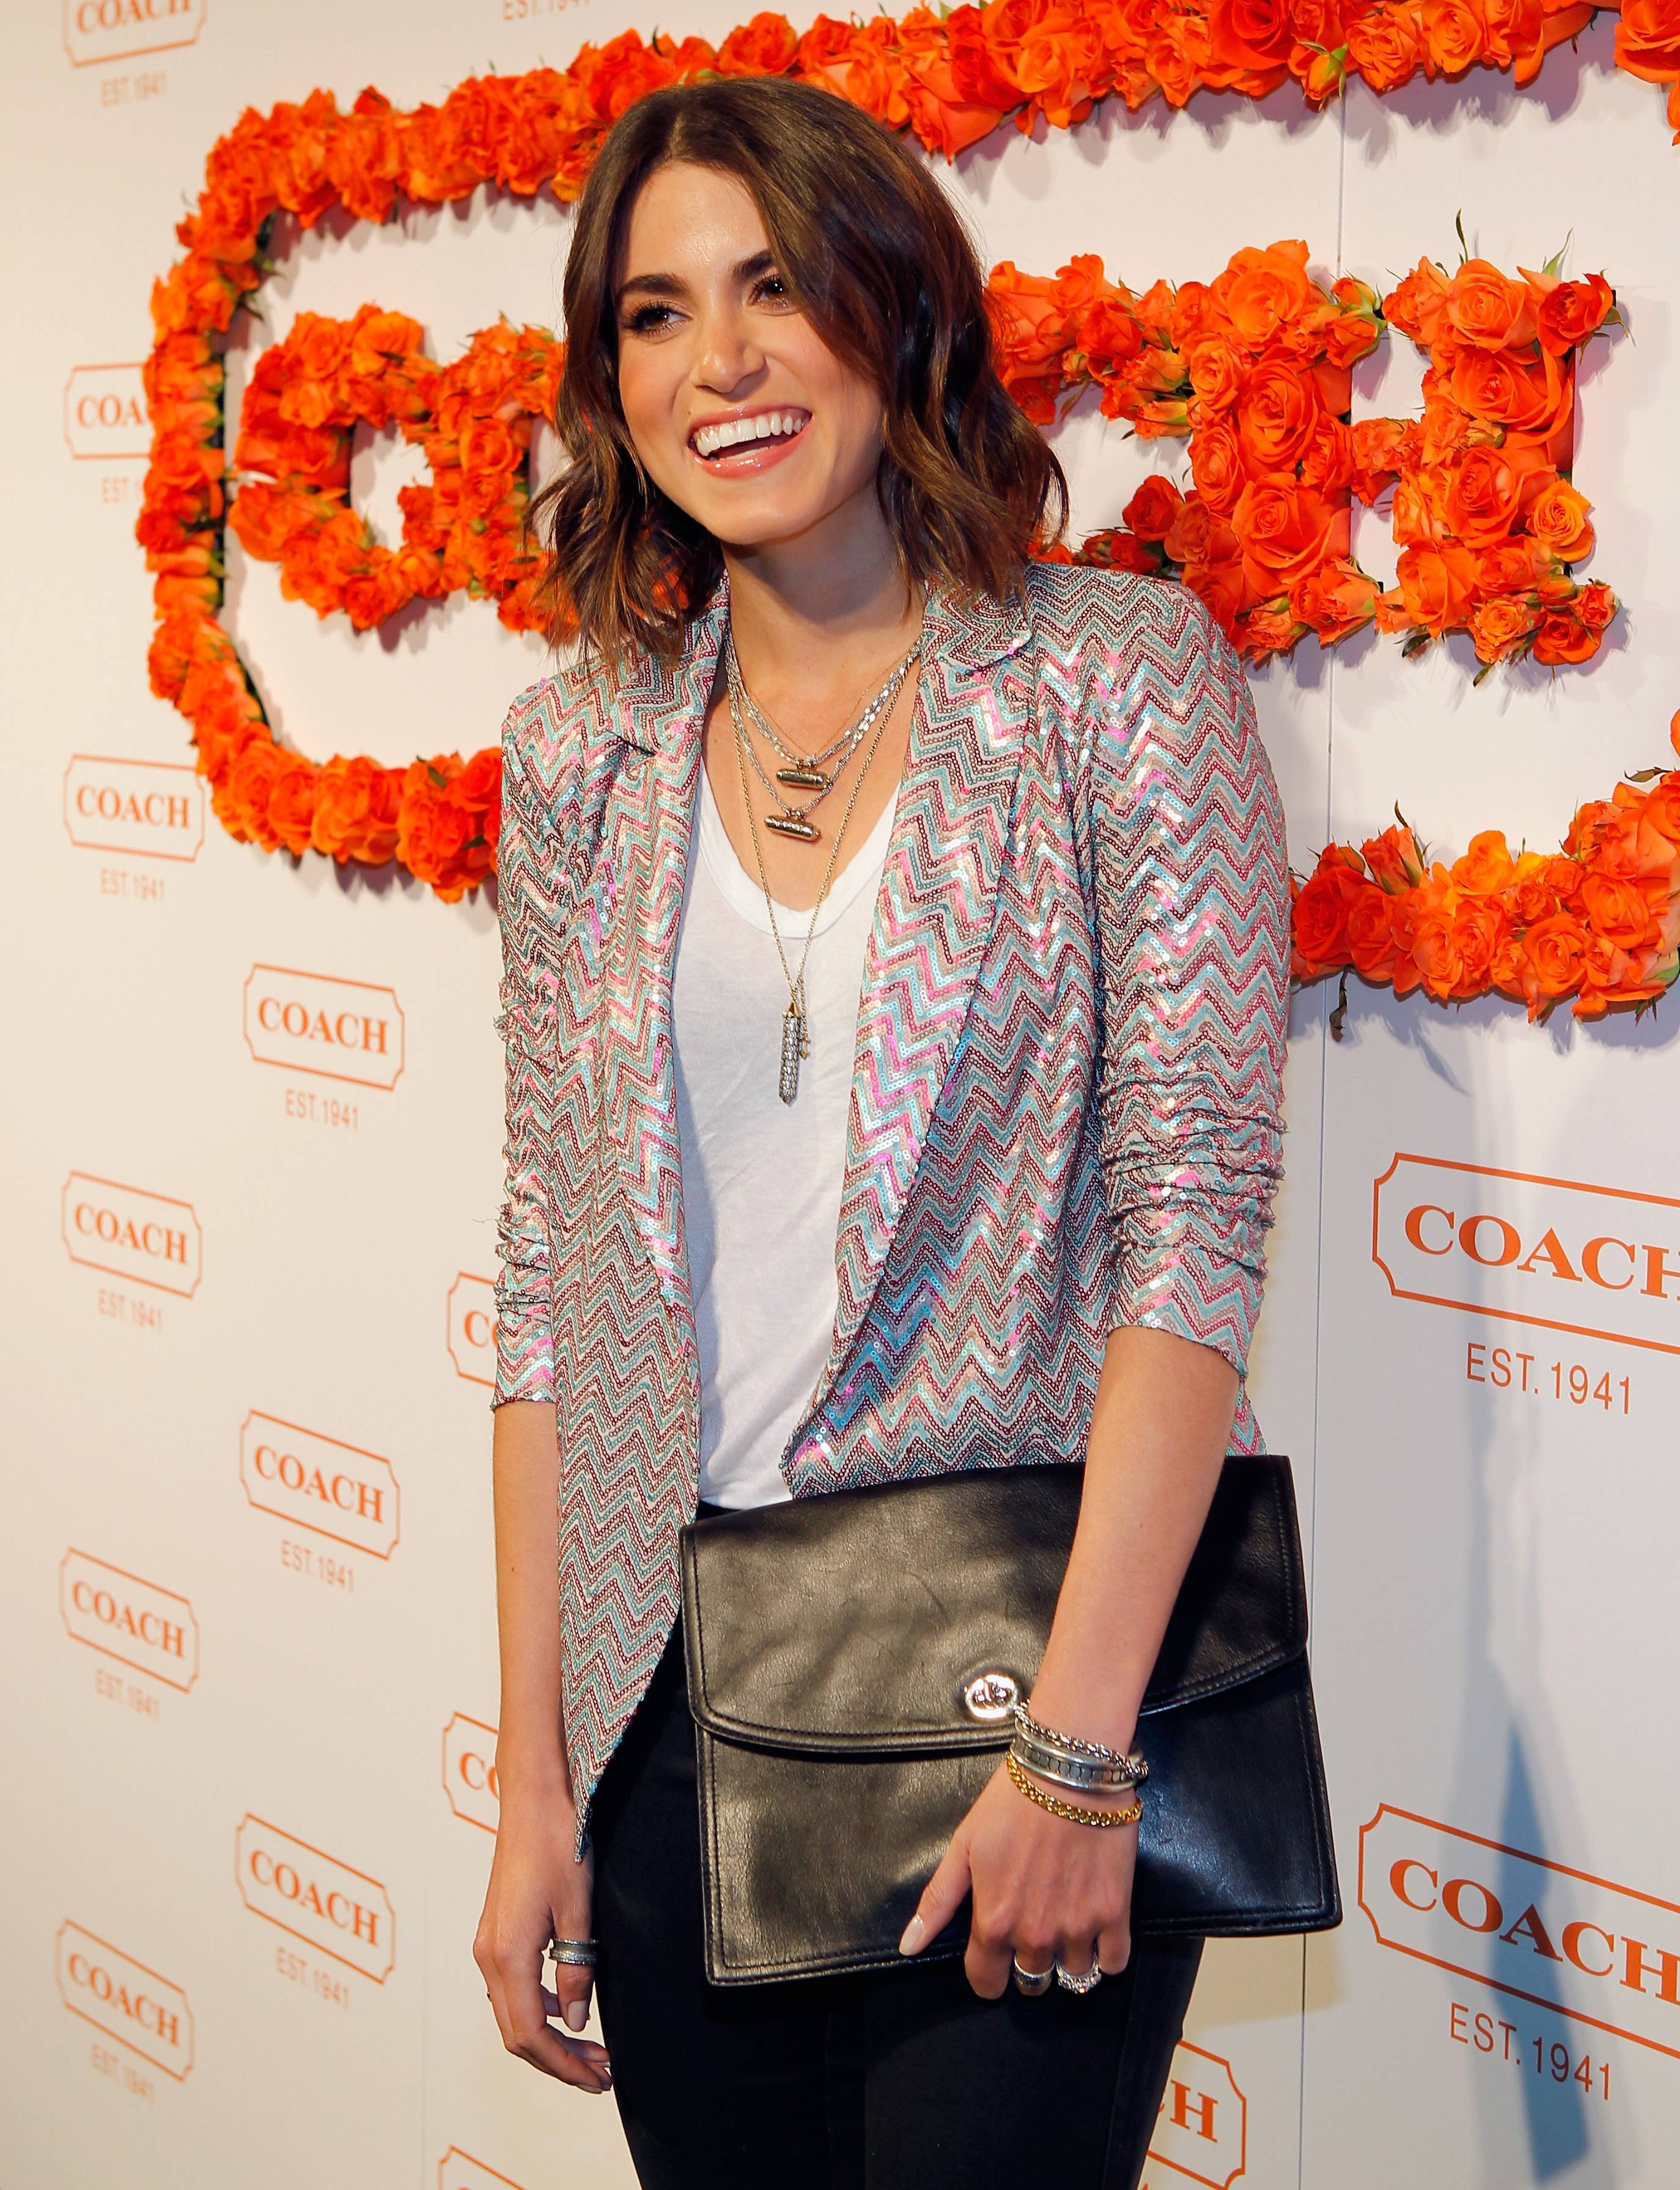 Coach 3rd Annual Evening Of Cocktails And Shopping To Benefit The Children's Defense Fund Hosted By Katie McGrath, J.J. Abrams and Bryan Burk